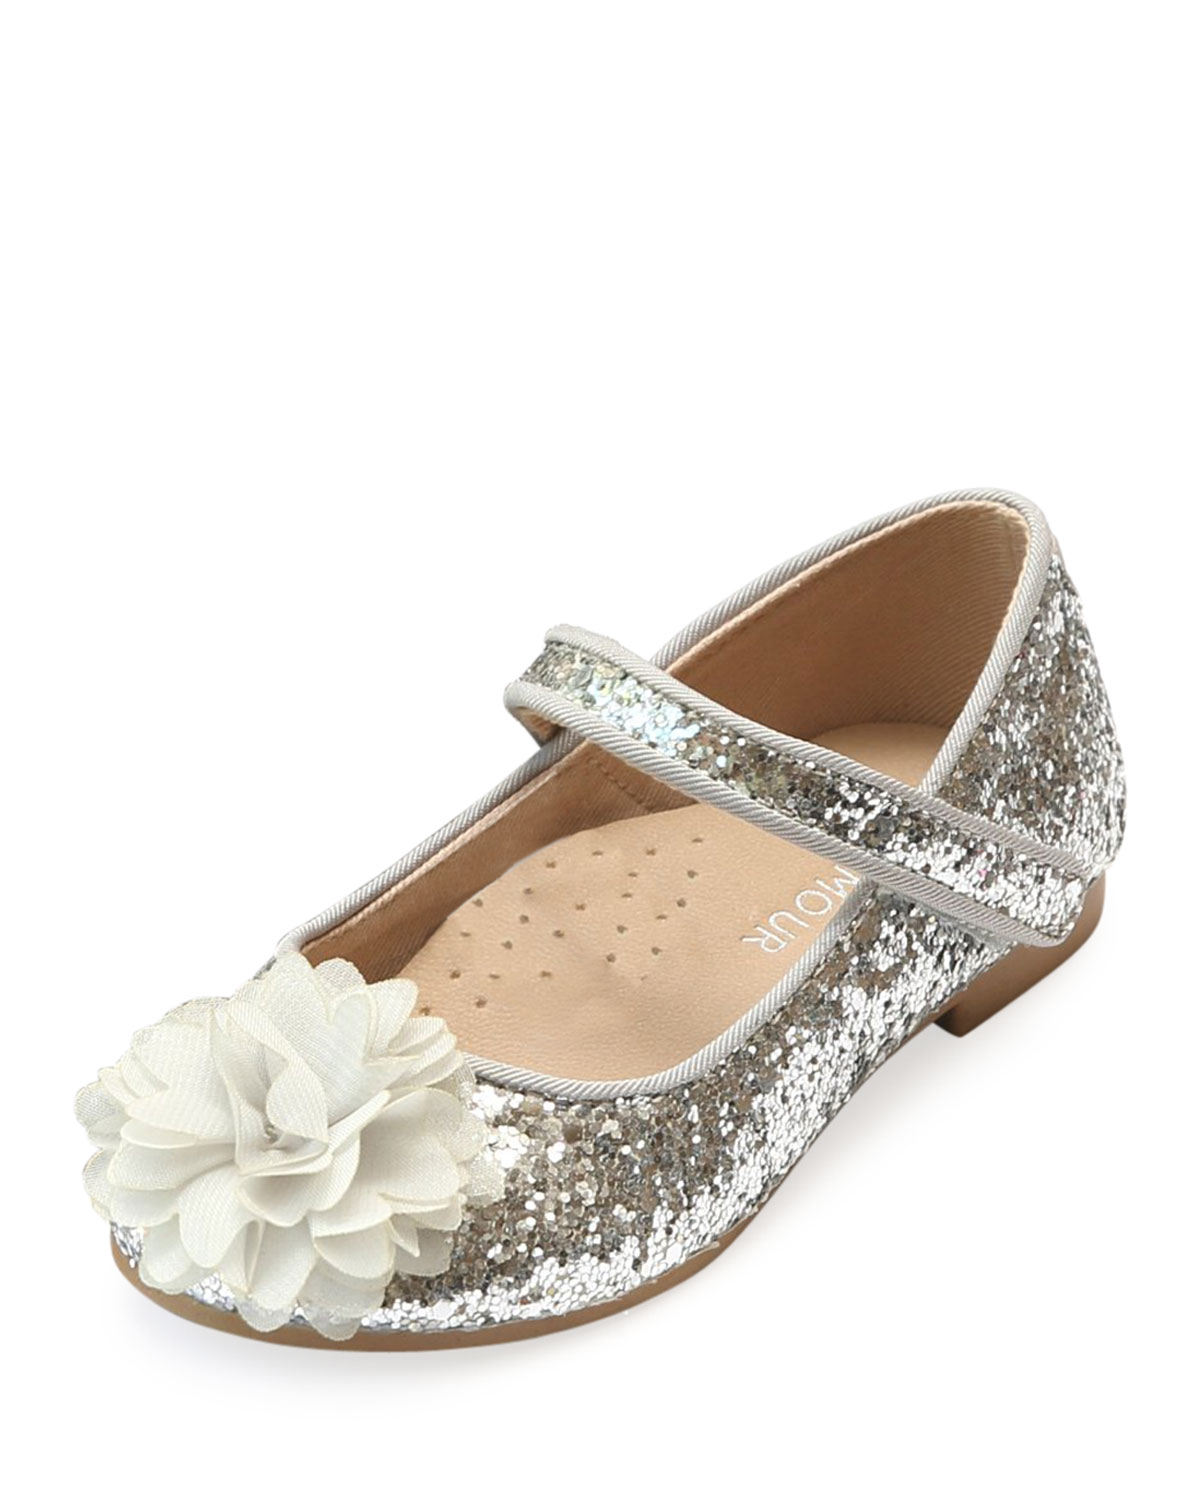 a73a98514d2e L Amour Shoes Alice Sparkly Glitter Flower Flats